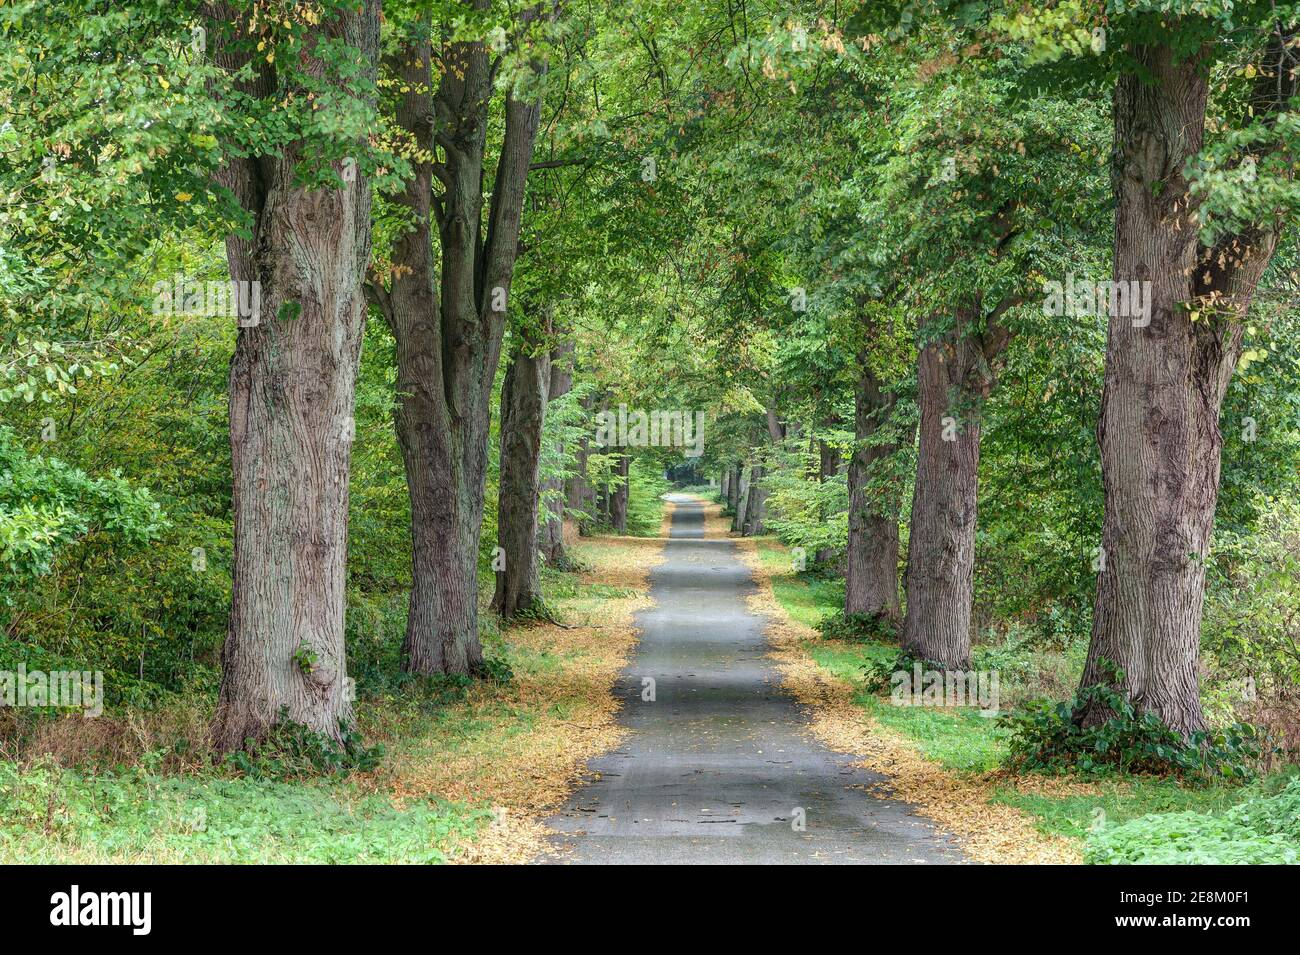 In autumn, the small road that leads through the magnificent tree-lined avenue is framed by the yellow leaves of the trees. Stock Photo